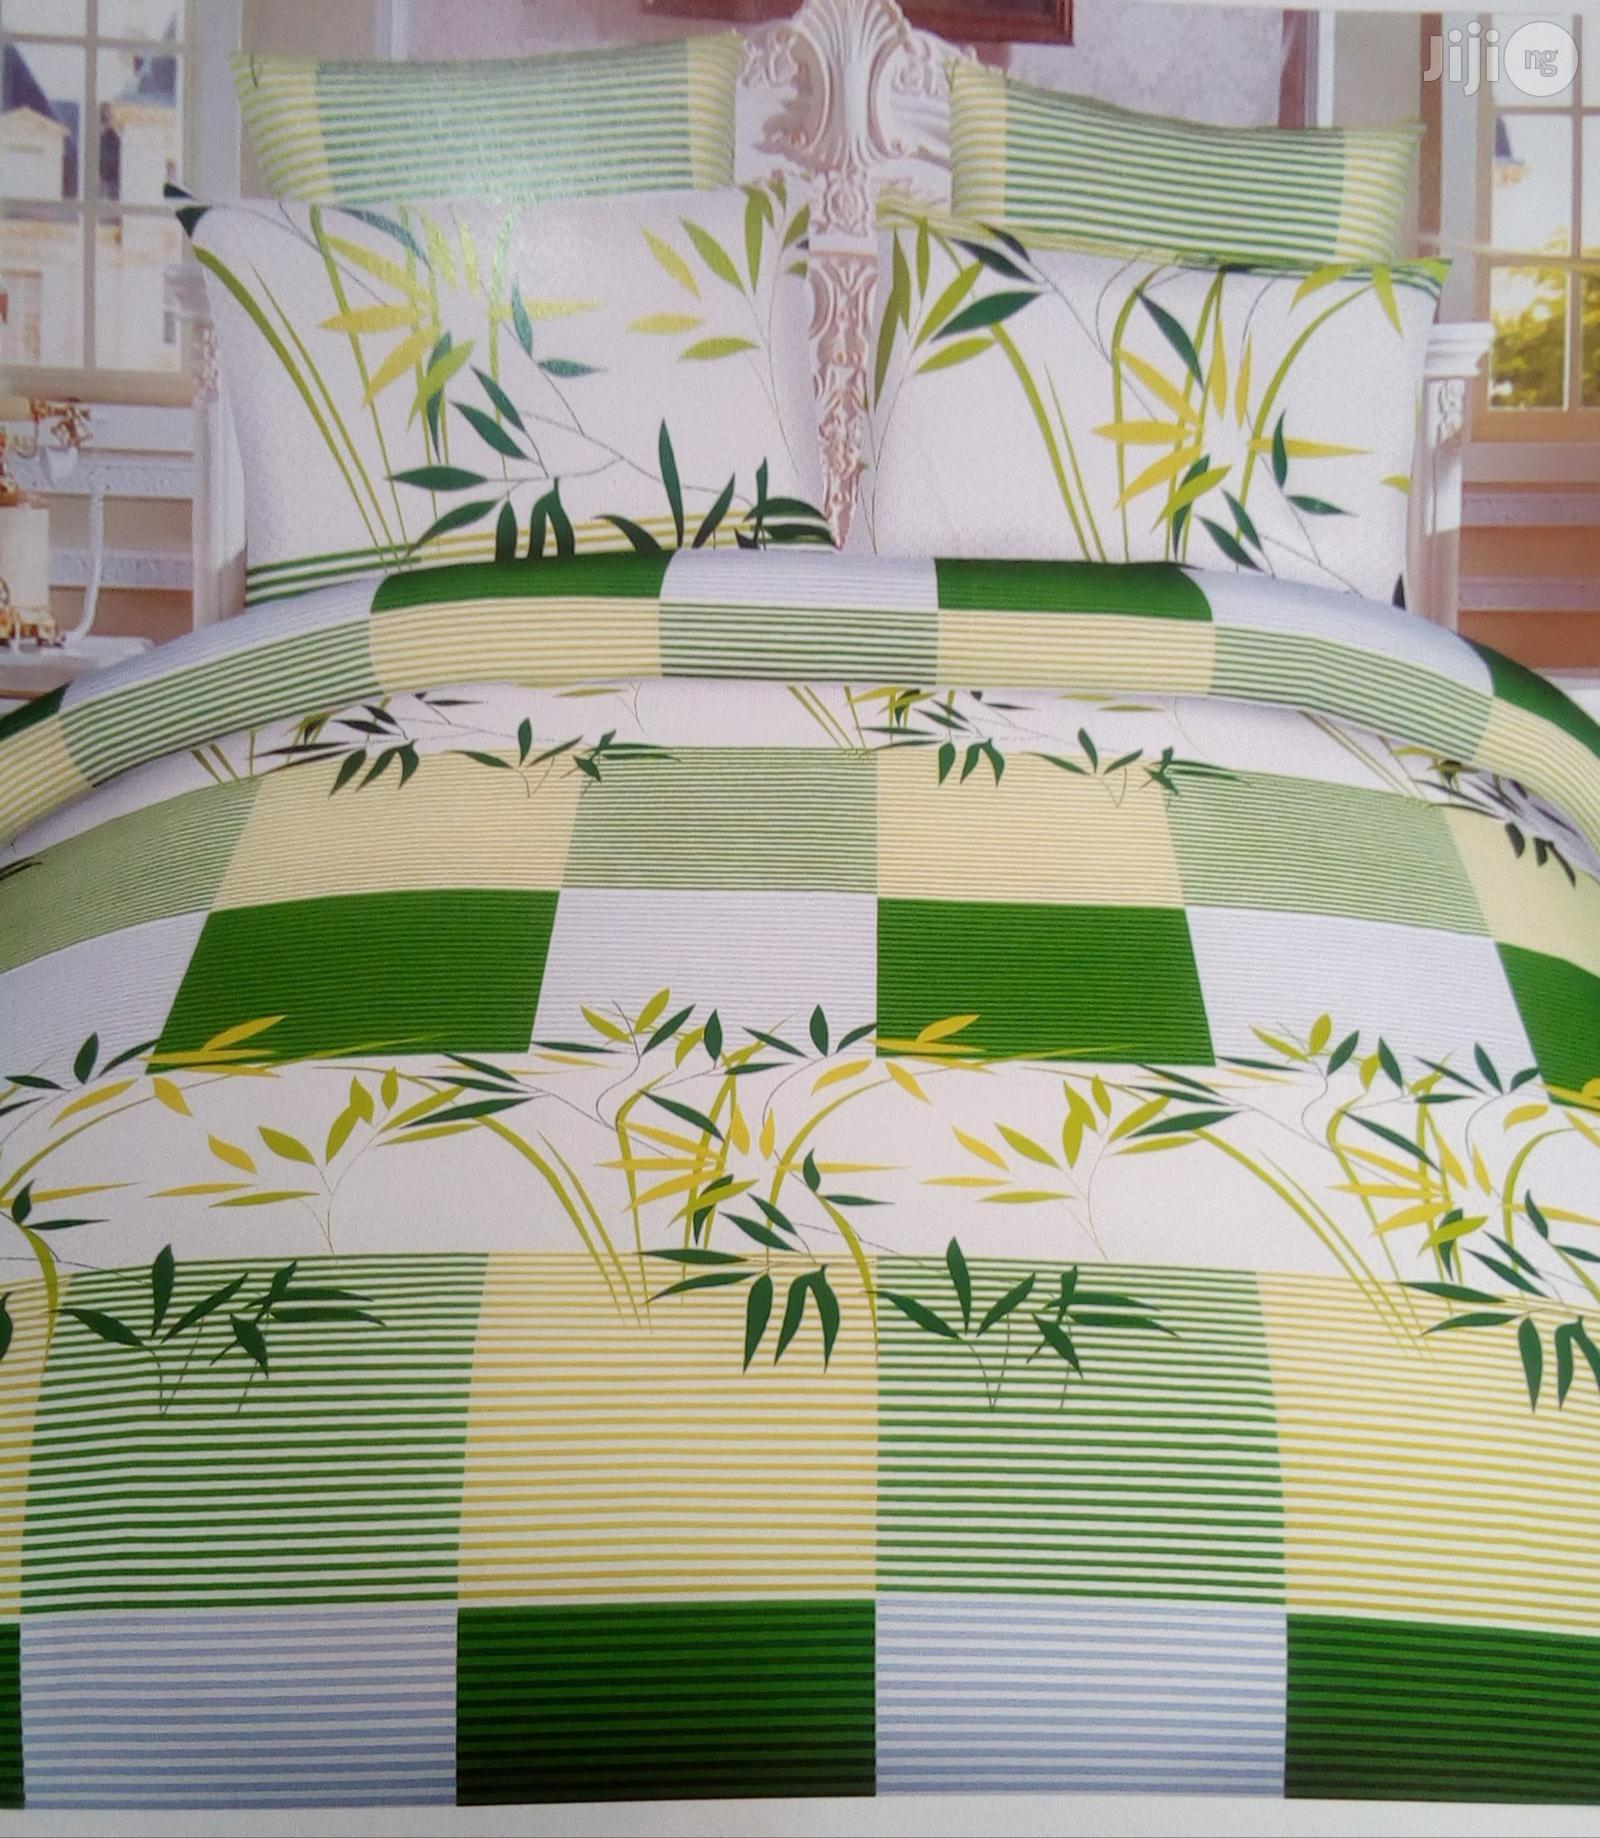 Classic Duvet and Bedsheets